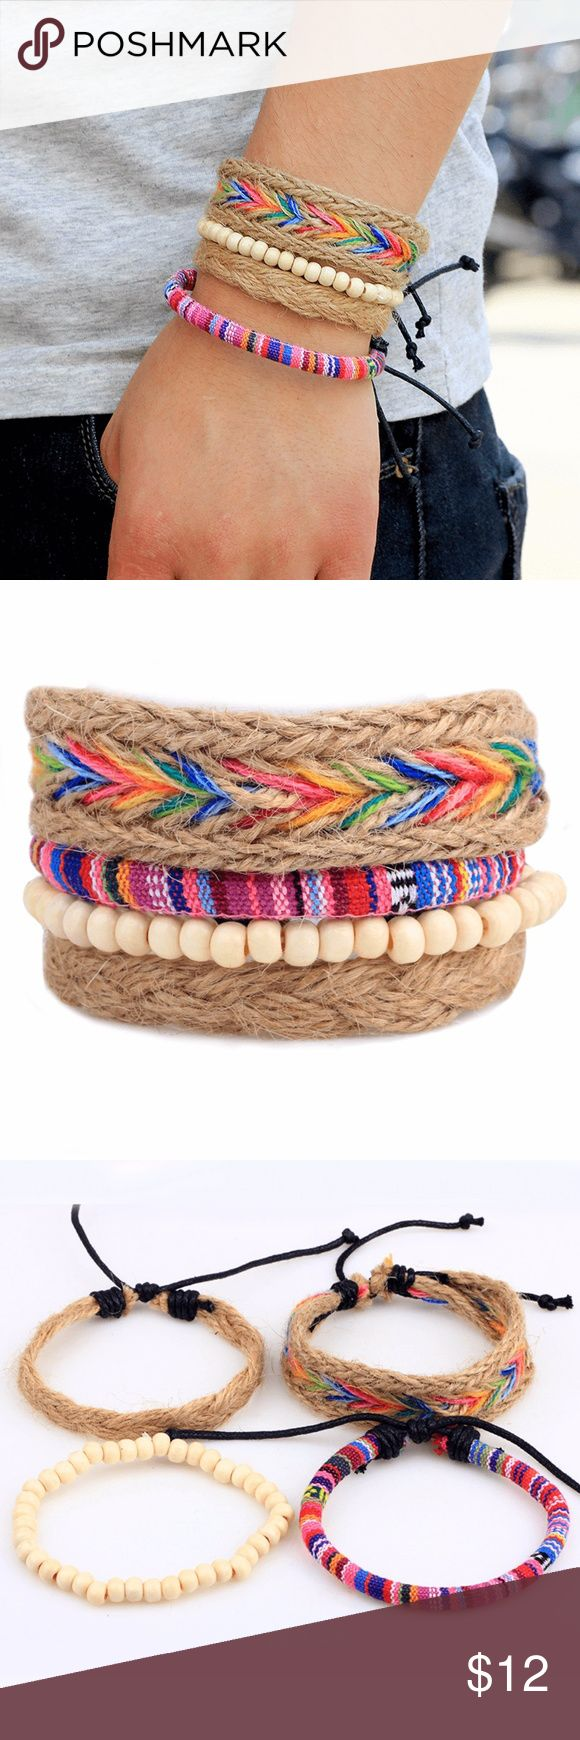 "Fashion Jewelry Bracelets Nepal Bracelet Beaded Braid Hemp Cord Feature: Nepal, yunnan, seven colors, beads Specifications: 7""-8"" Material: Hemp braid cord, wood beads, wax cord Makes a great gift for friend and family or self purchase Birthday gift, Valentine's gift and etc Jewelry Bracelets"